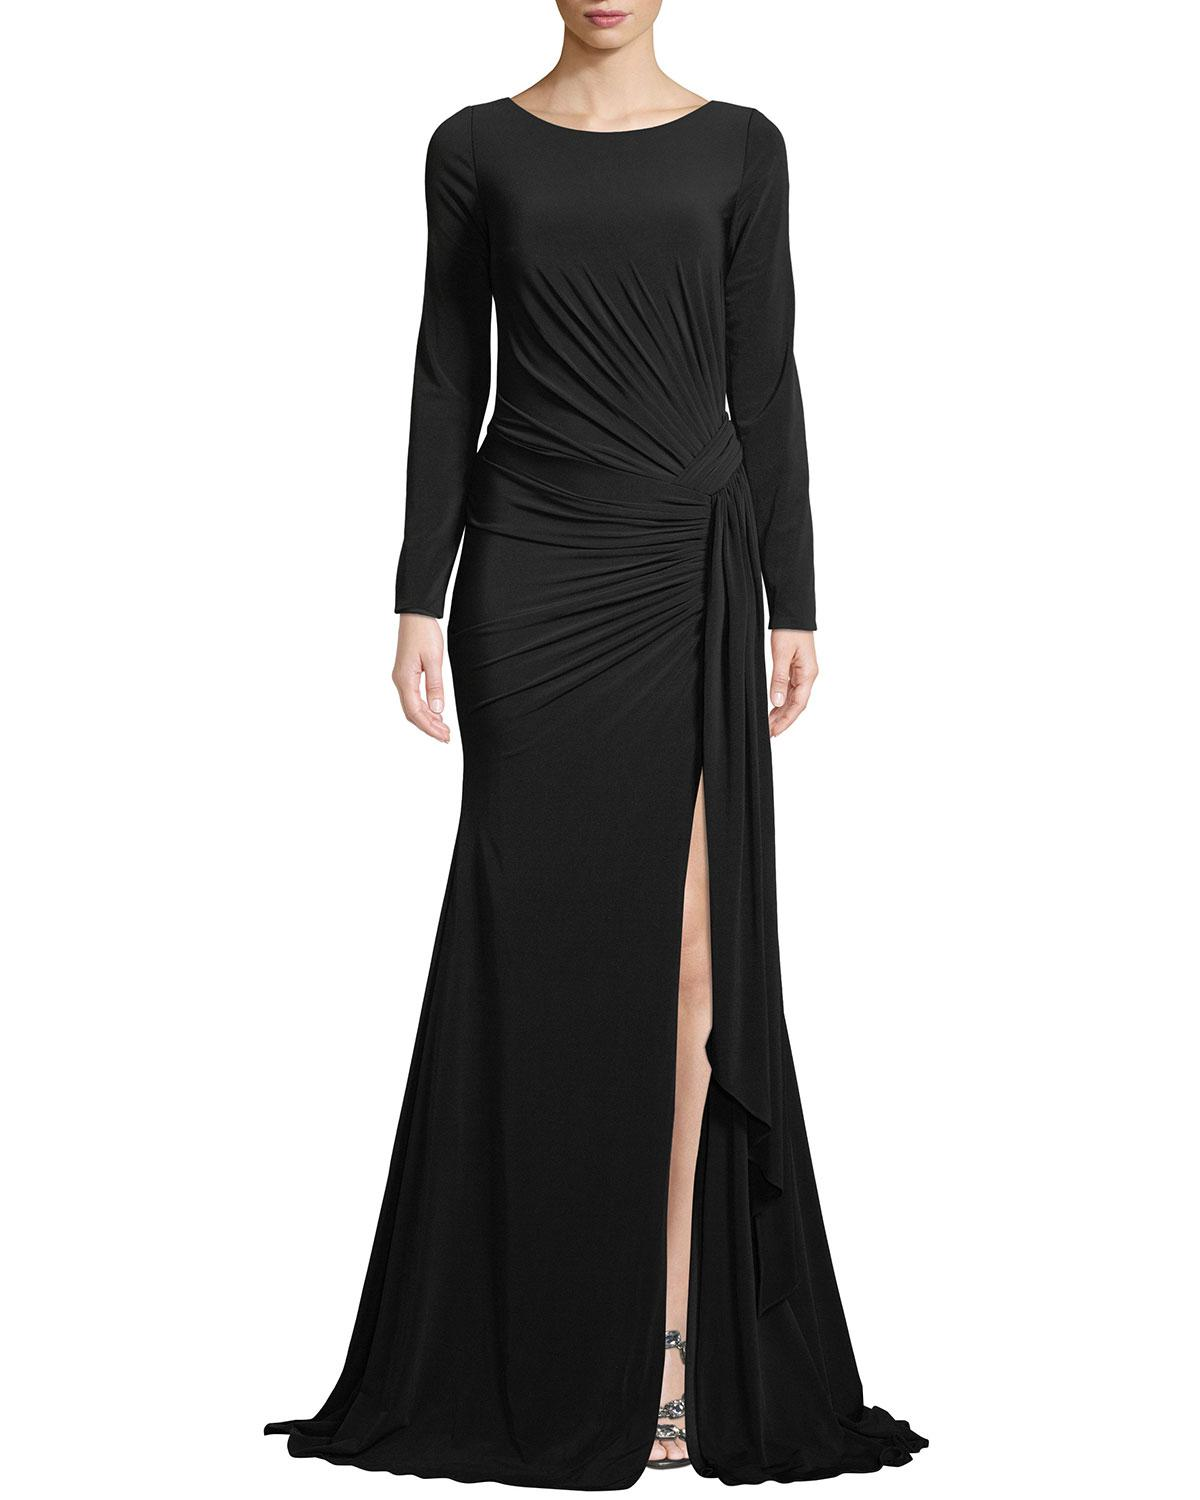 ab06fcd3b716 Lyst - Jovani Long-sleeve Jersey Gown W/ Ruching in Black